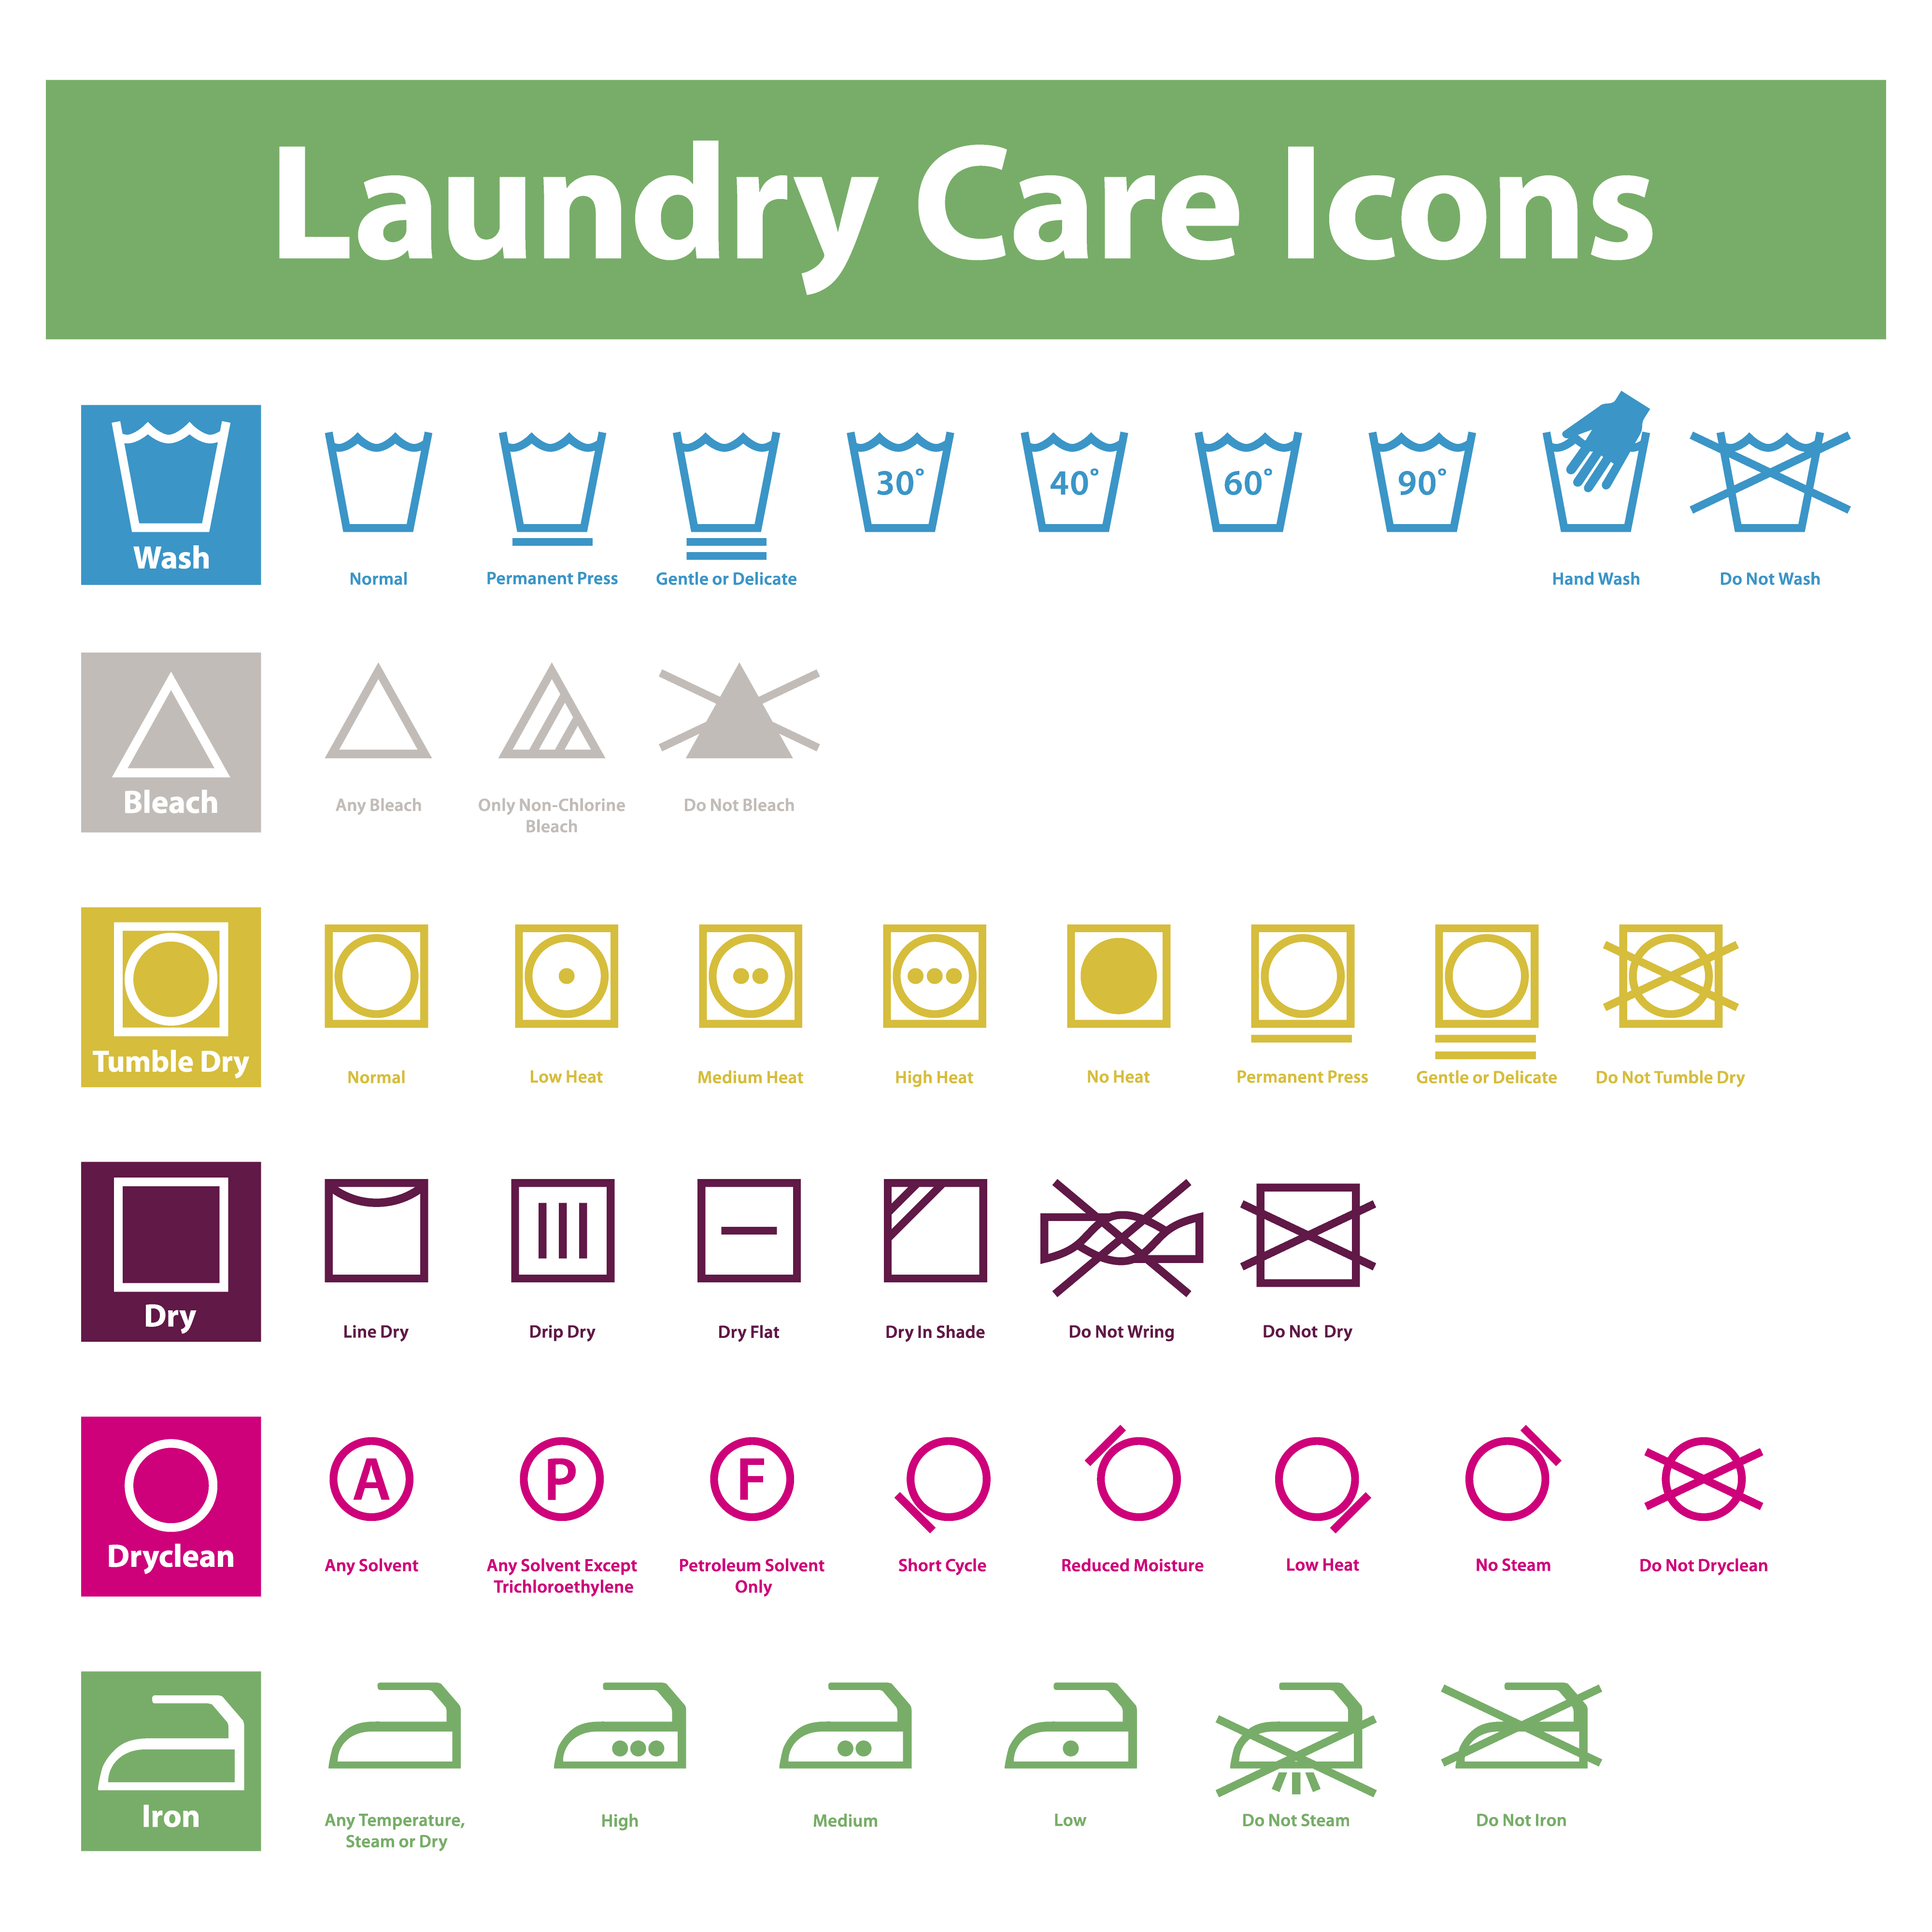 following laundry care instructions can help your clothes last longer